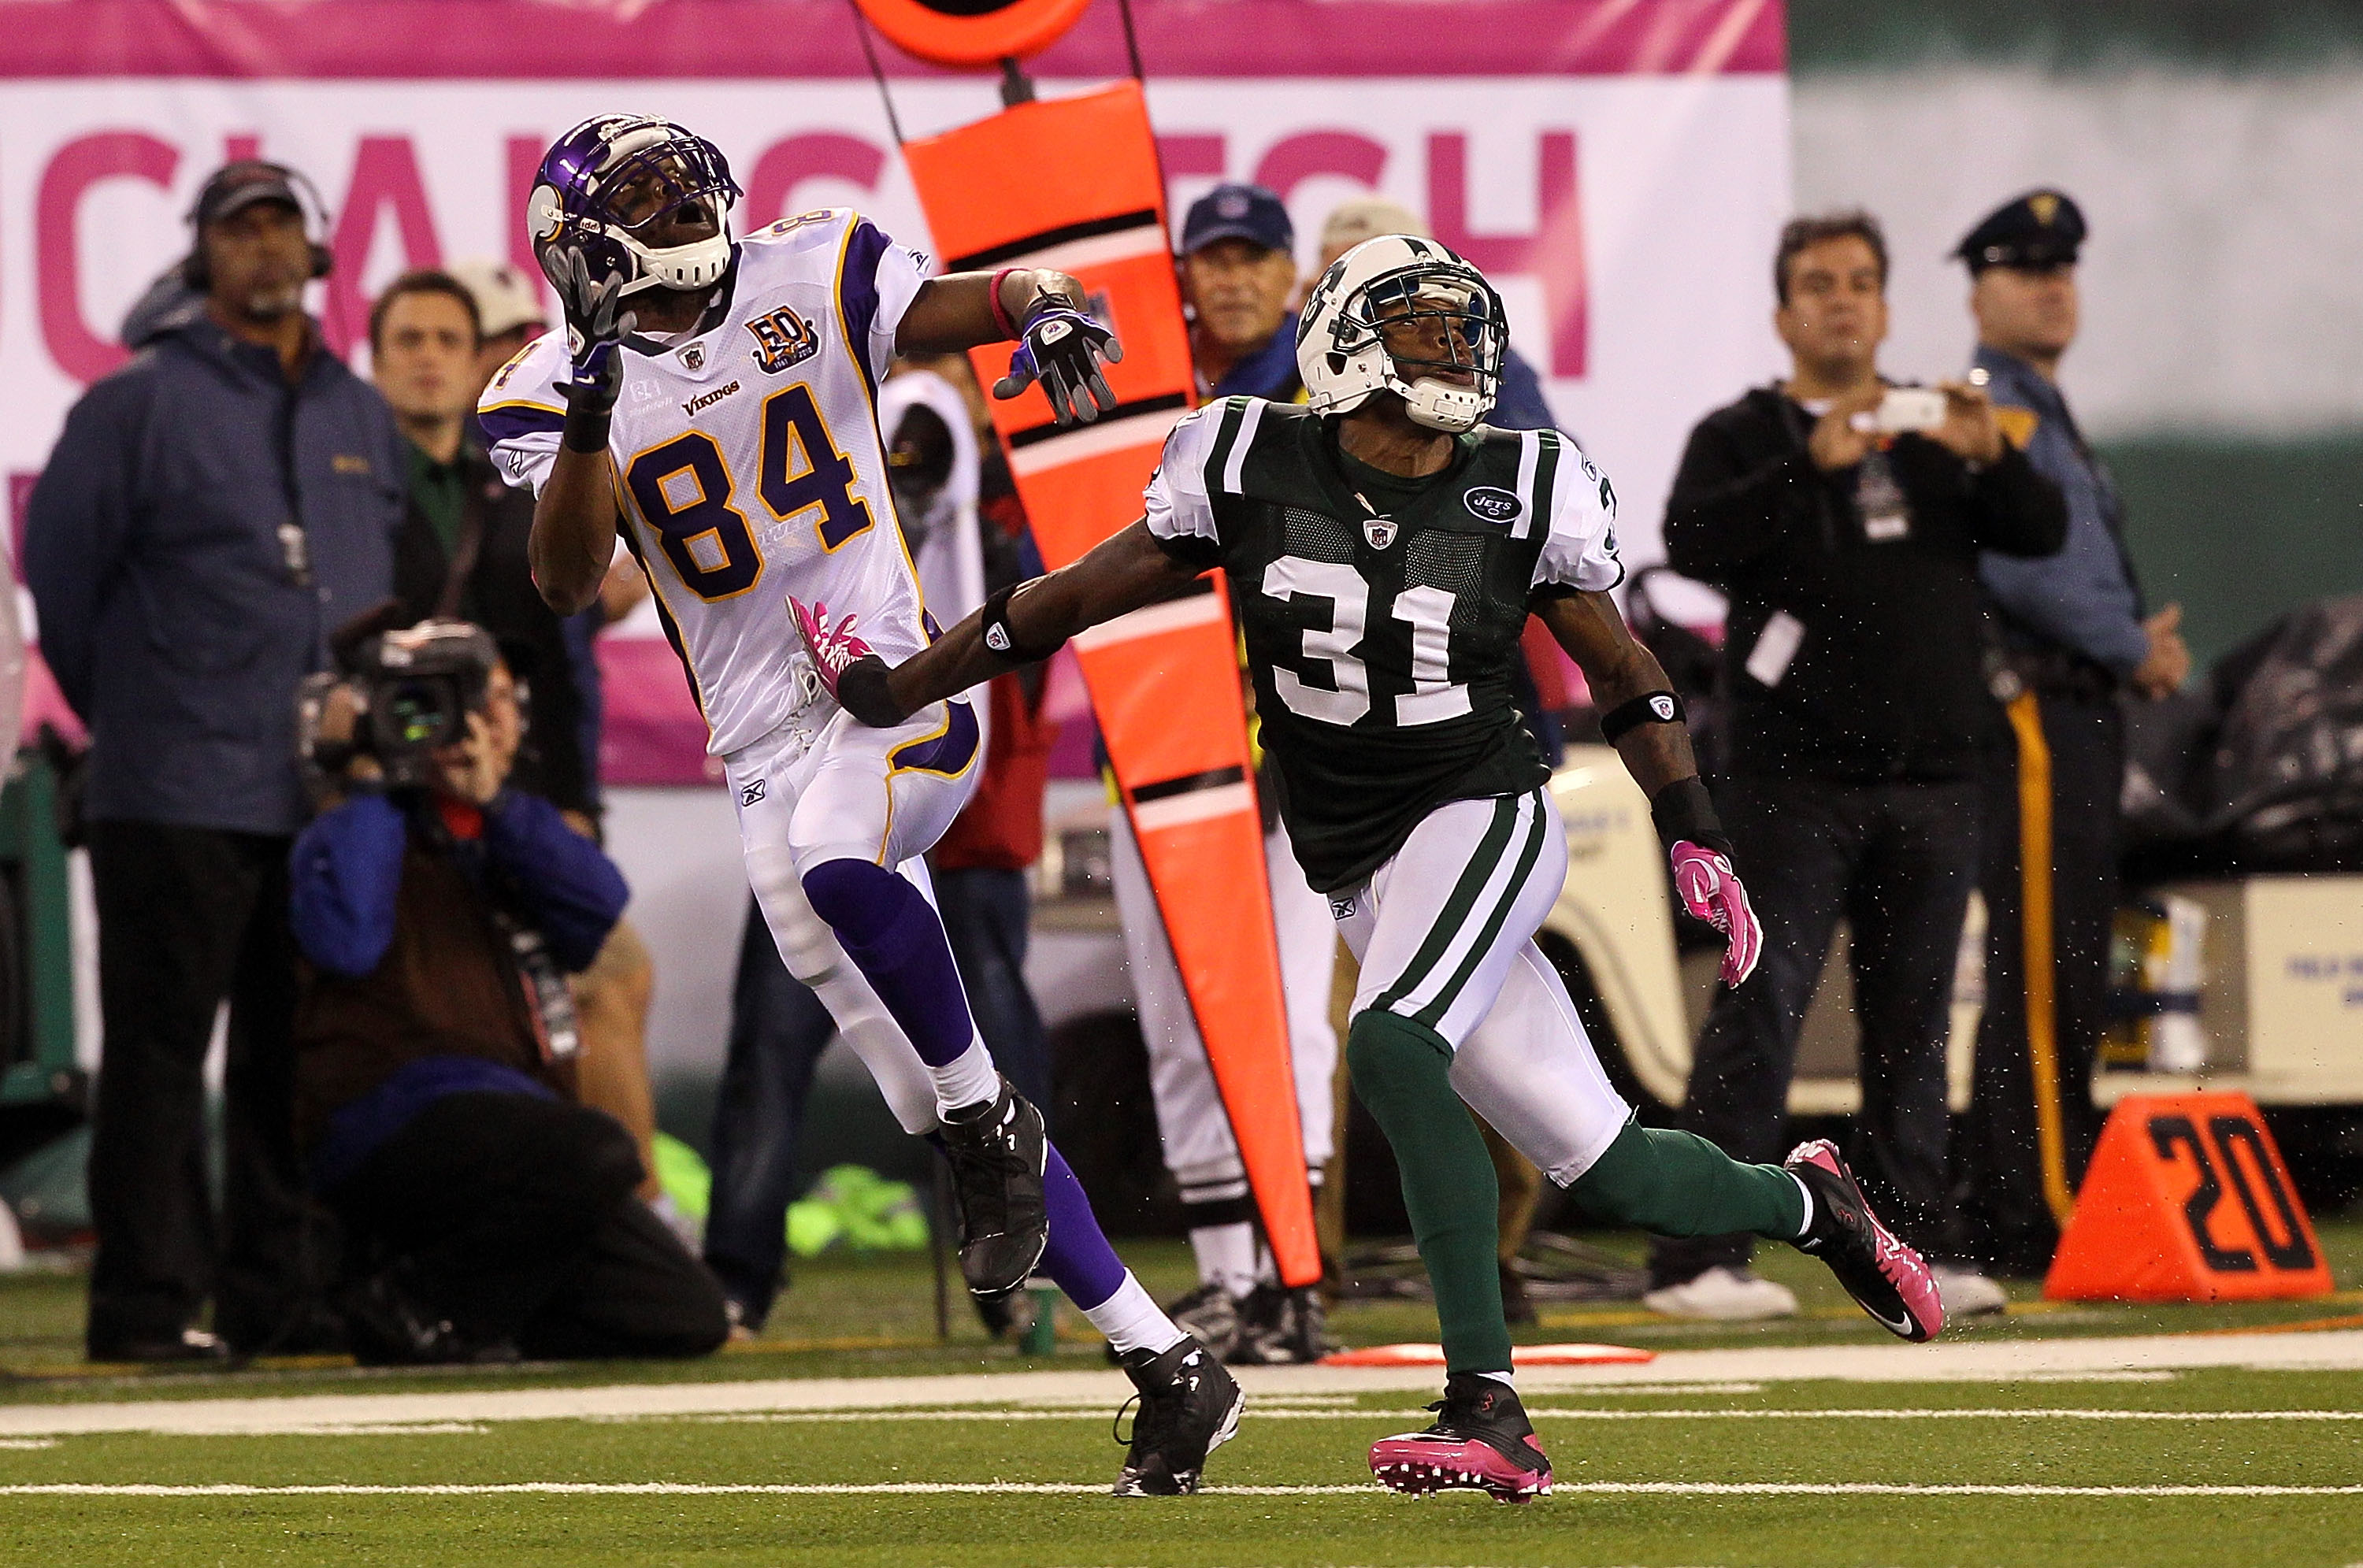 EAST RUTHERFORD, NJ - OCTOBER 11:  Randy Moss #84 of the Minnesota Vikings runs a pattern on offense against Antonio Cromartie #31 of the New York Jets at New Meadowlands Stadium on October 11, 2010 in East Rutherford, New Jersey. The Jets won 29-20. (Pho